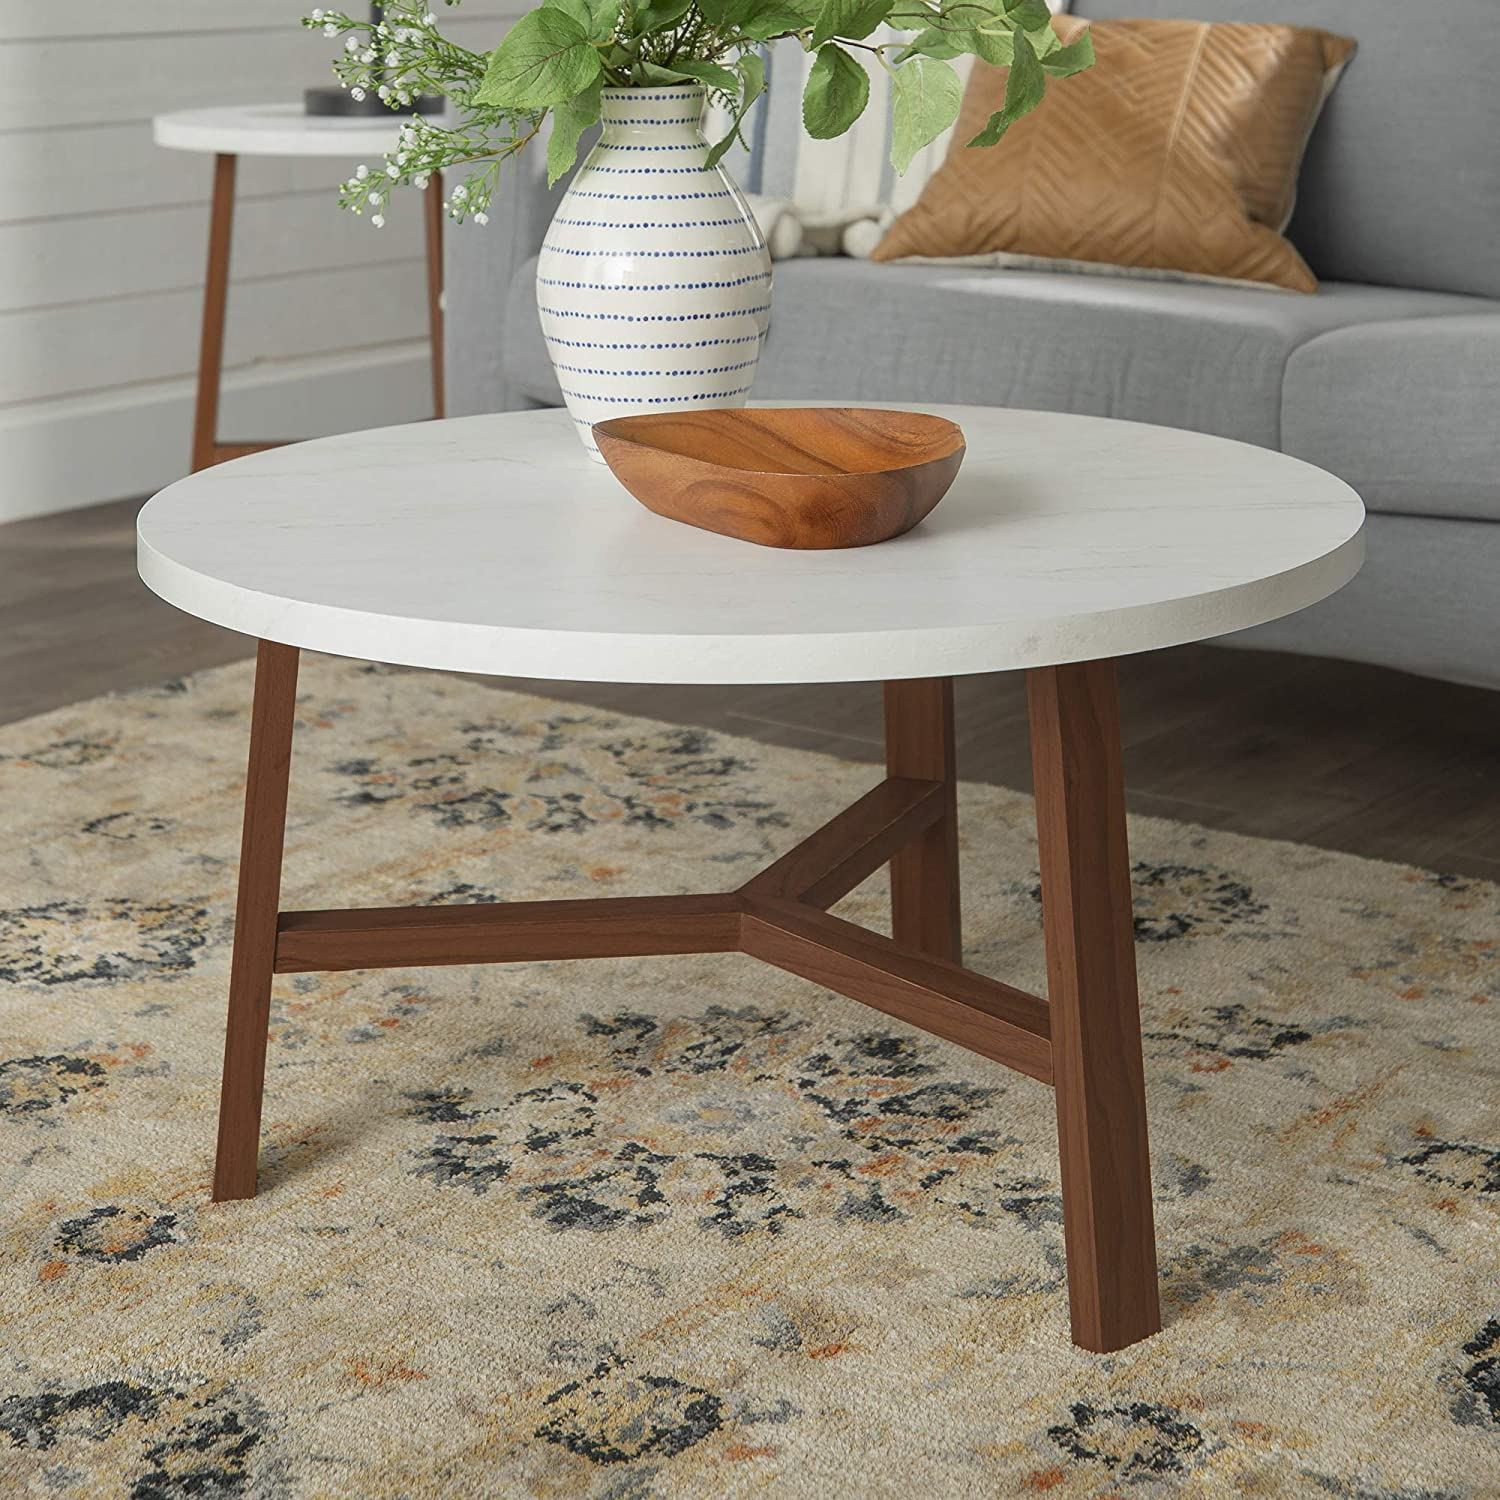 Amazon Com Walker Edison Furniture Azf30emctpc Mid Century Modern Round Coffee Accent Table Living Room 30 Inch White Marble Brown Furniture Decor